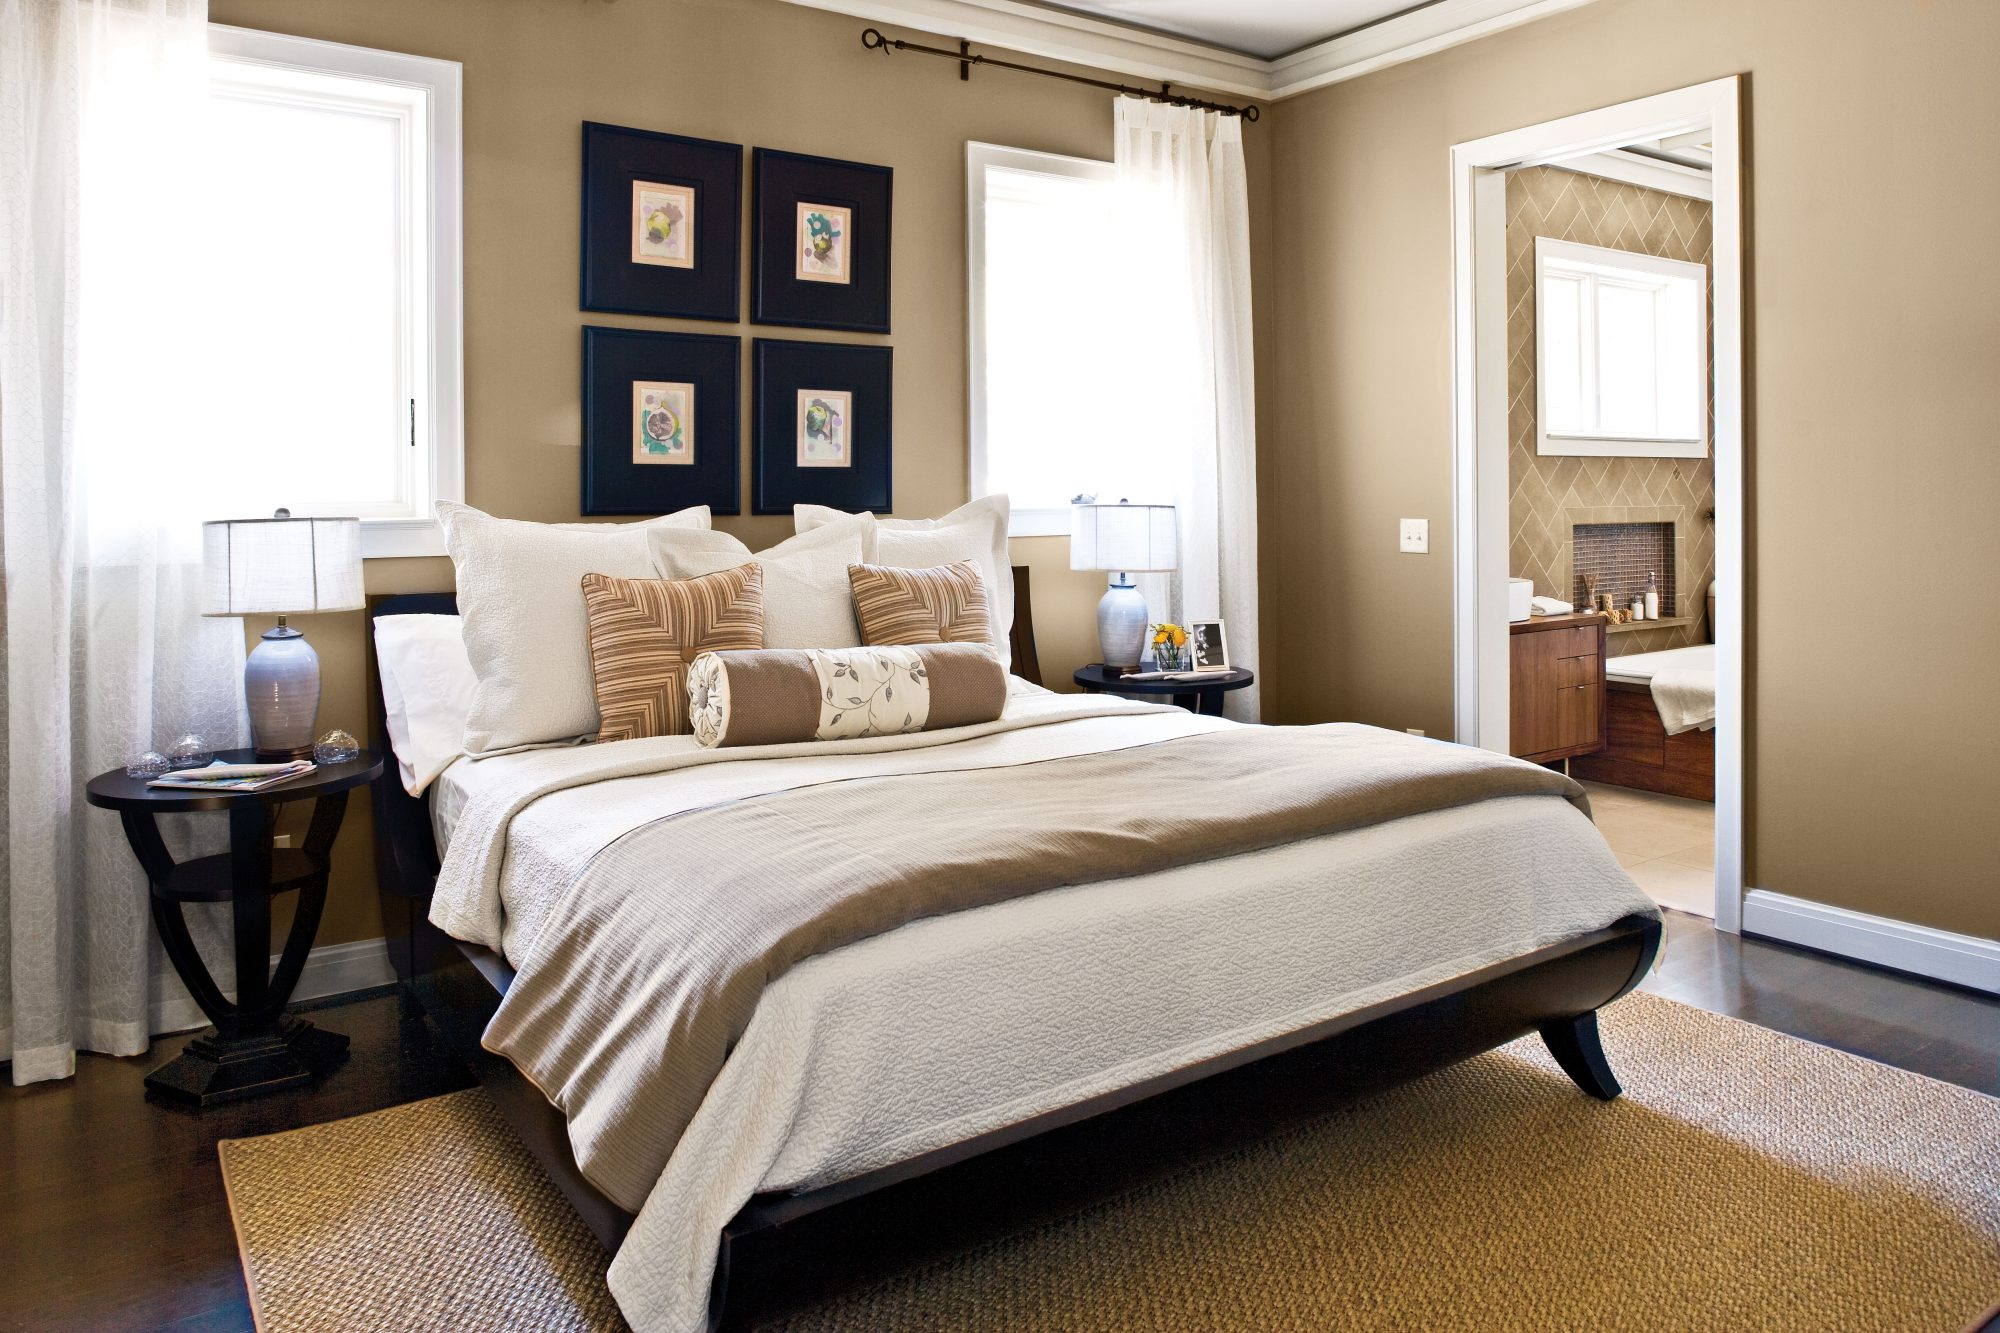 master bedroom decorating ideas southern living 17387 | hm 03d989c257080061 spcms itok sugjbip7